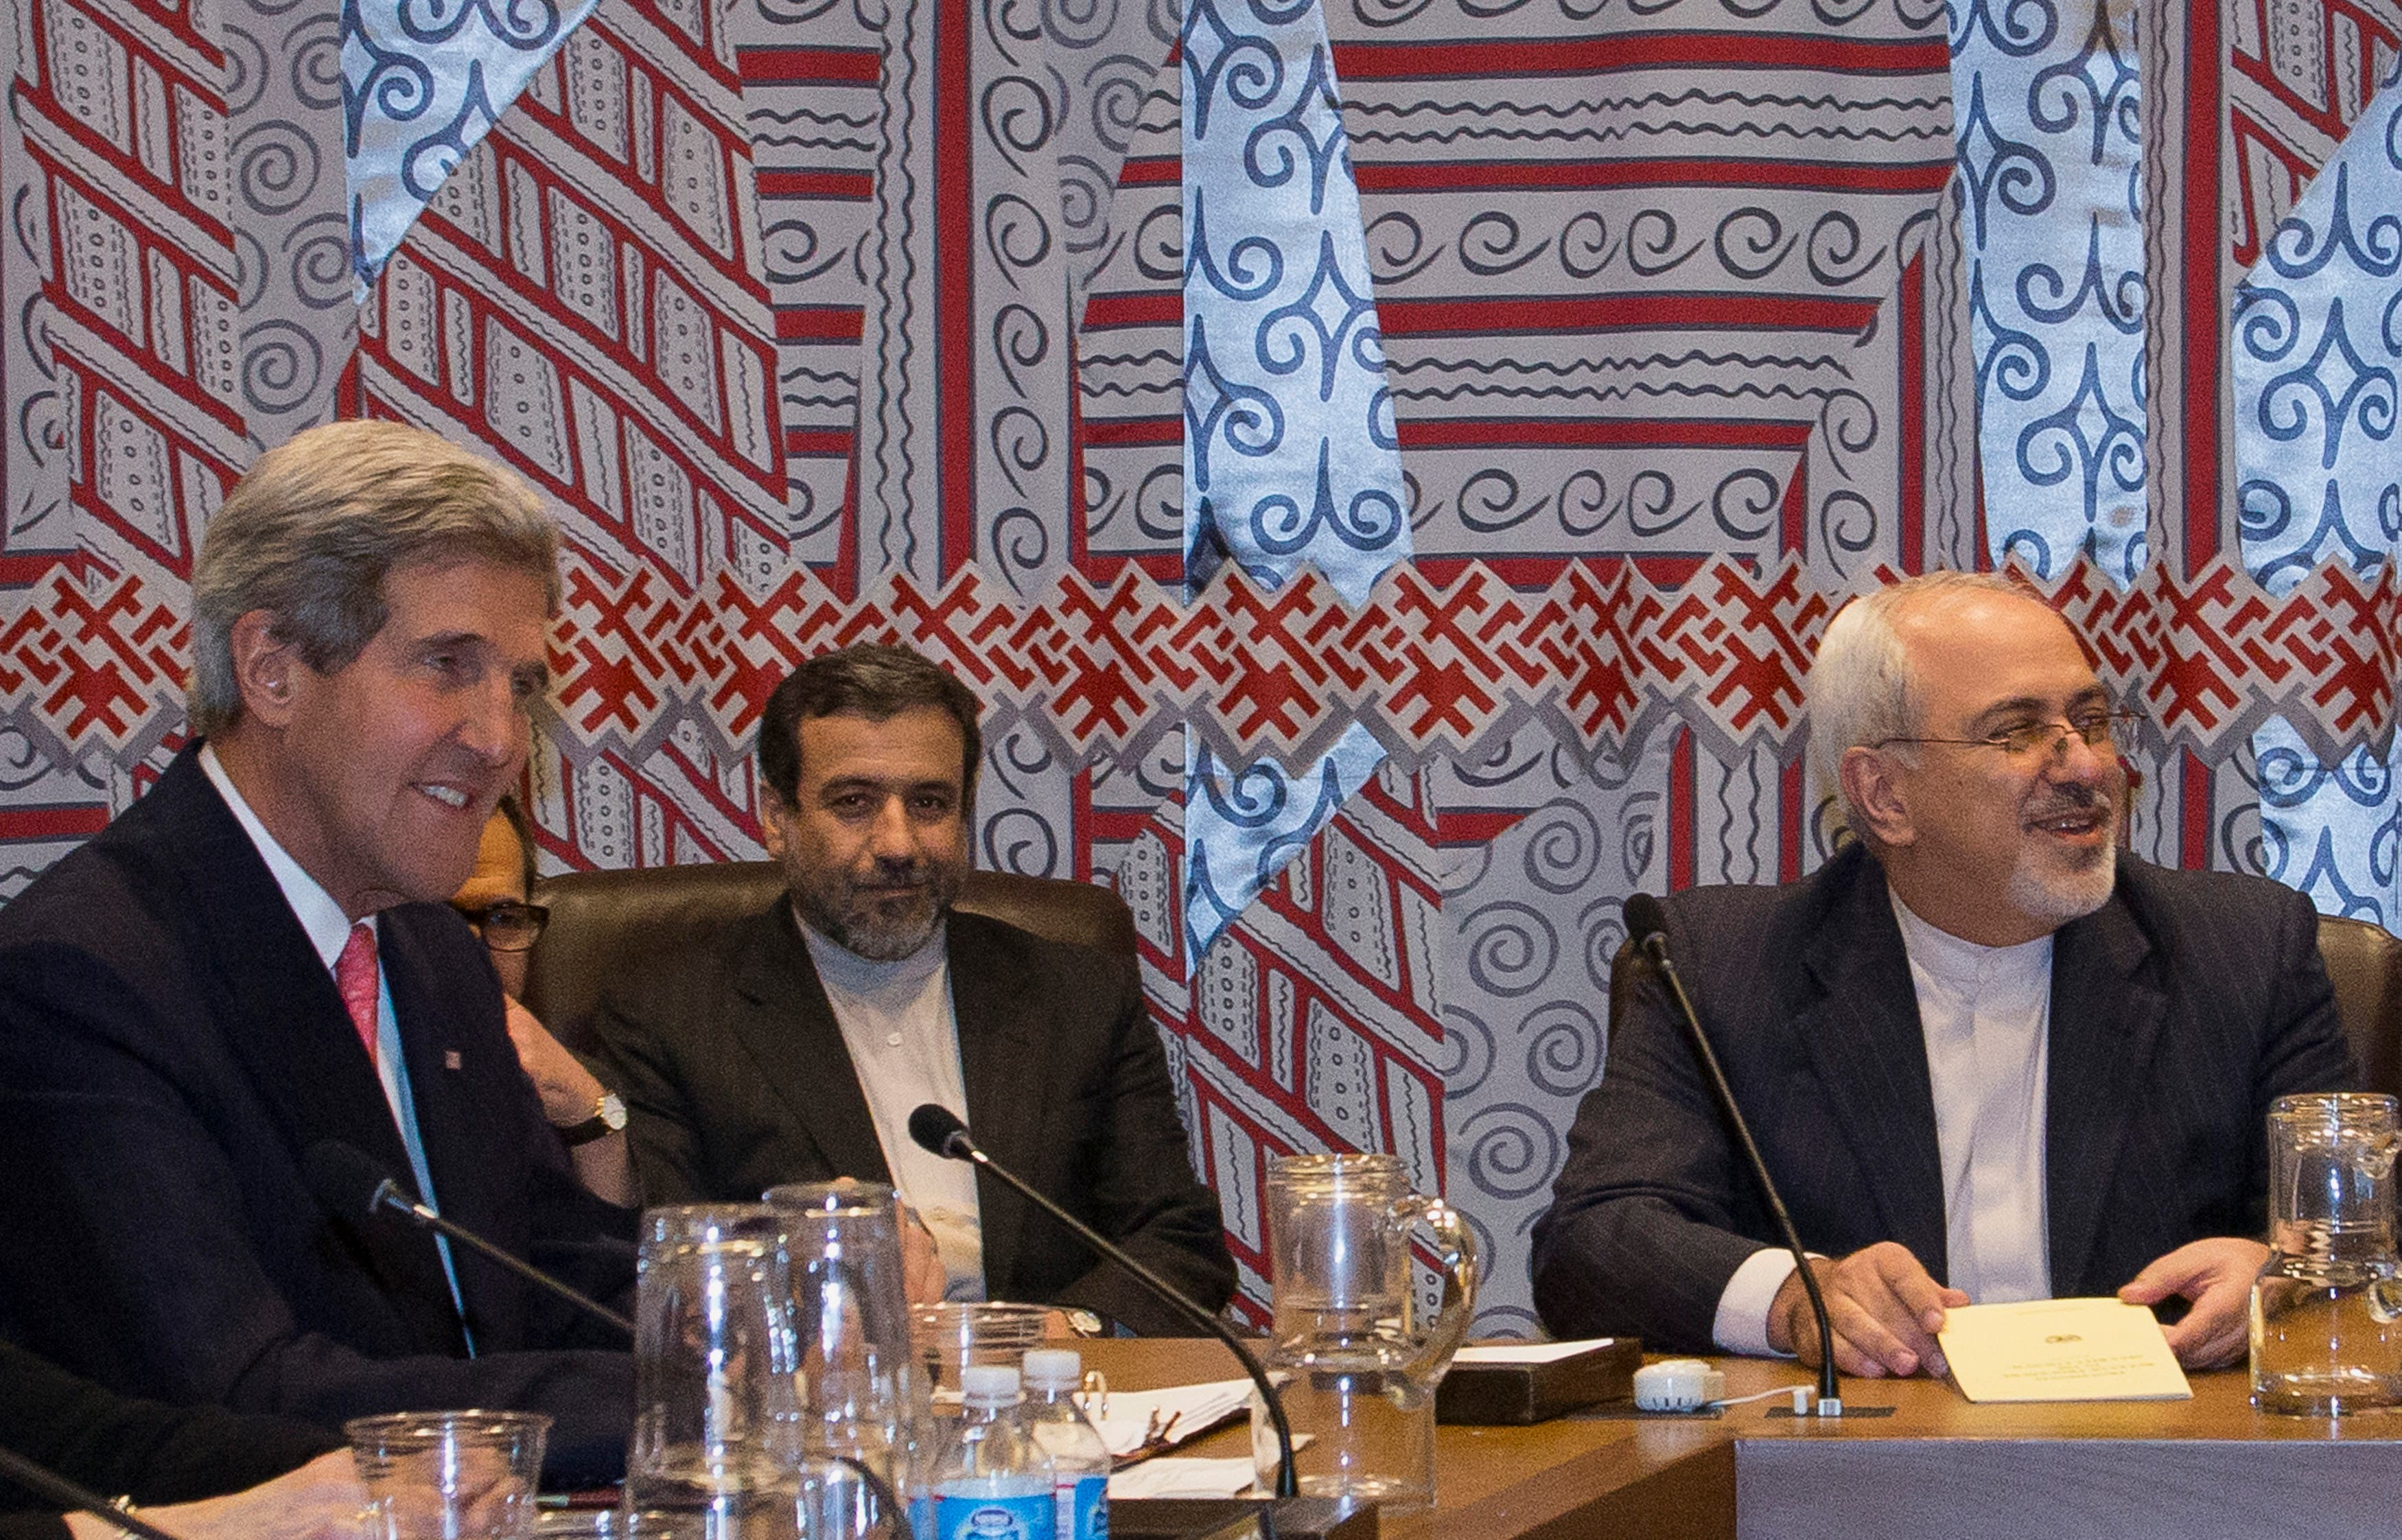 U.S. Secretary of State John Kerry (L) and Iran's Foreign Minister Mohammad Javad Zarif (R) are seated during a P5+1 group meeting in New York, Sep. 26, 2013. (File photo: Reuters)